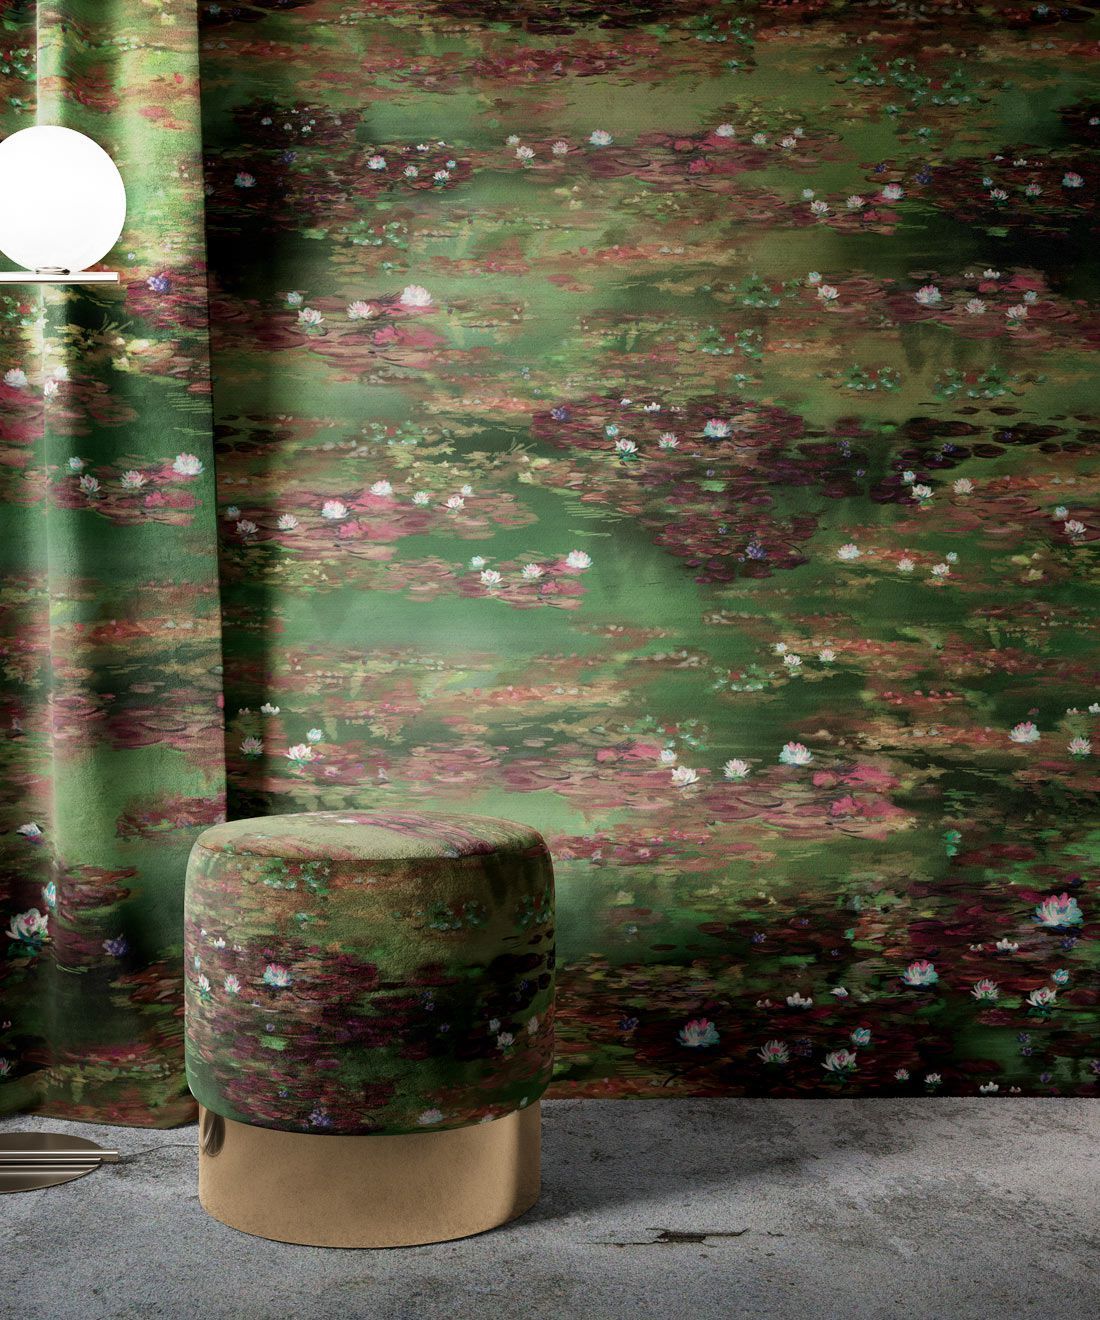 Water Lillies Wallpaper • Abstract Wallpaper • Dreamy Wallpaper • Green Fairy Wallpaper • Insitu